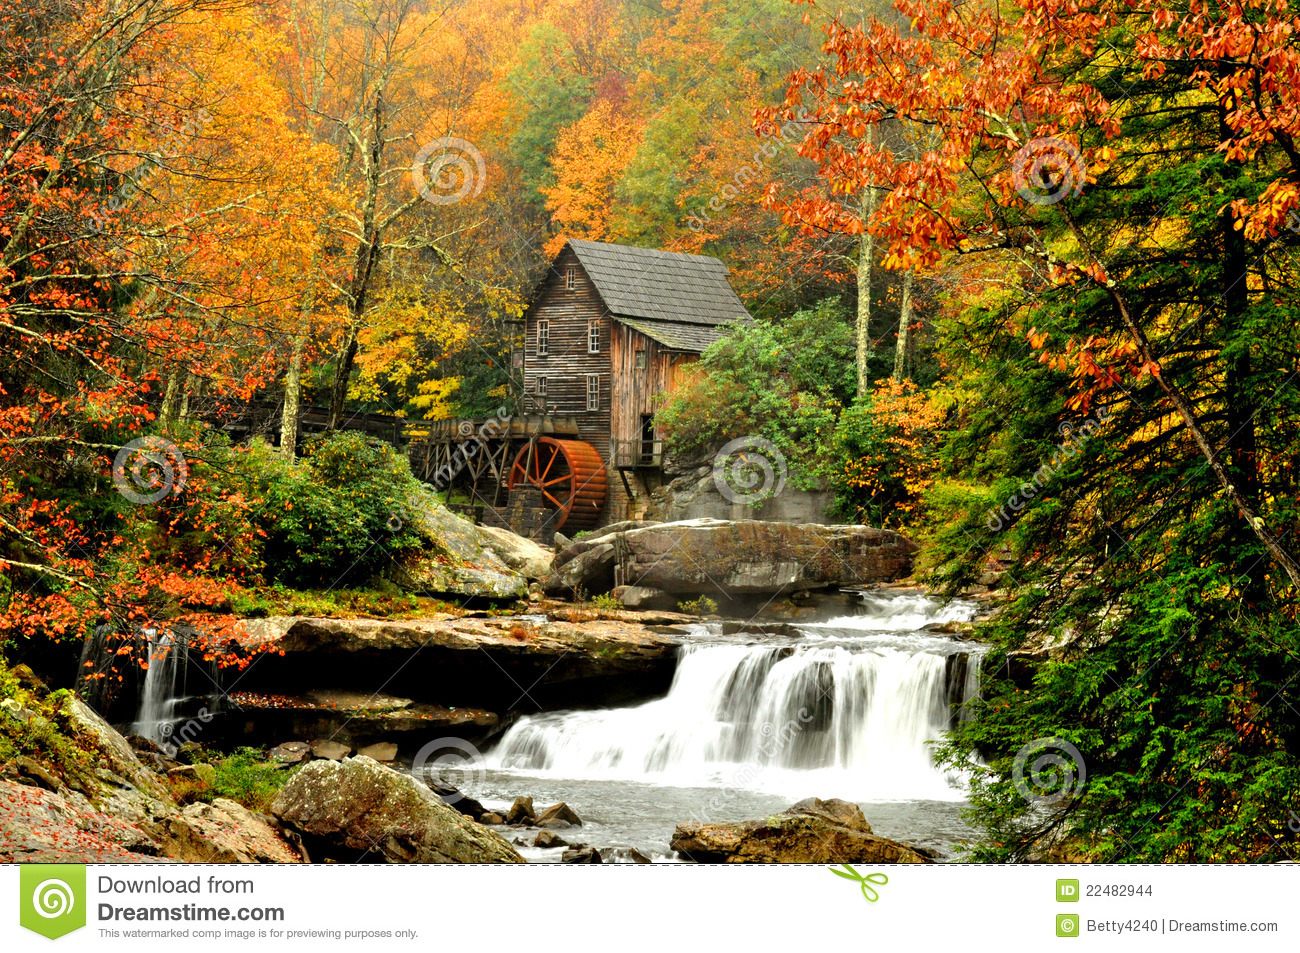 Fall Leaves Falling Wallpaper Grist Mill Surrounded By Fall Leaves Stock Photo Image